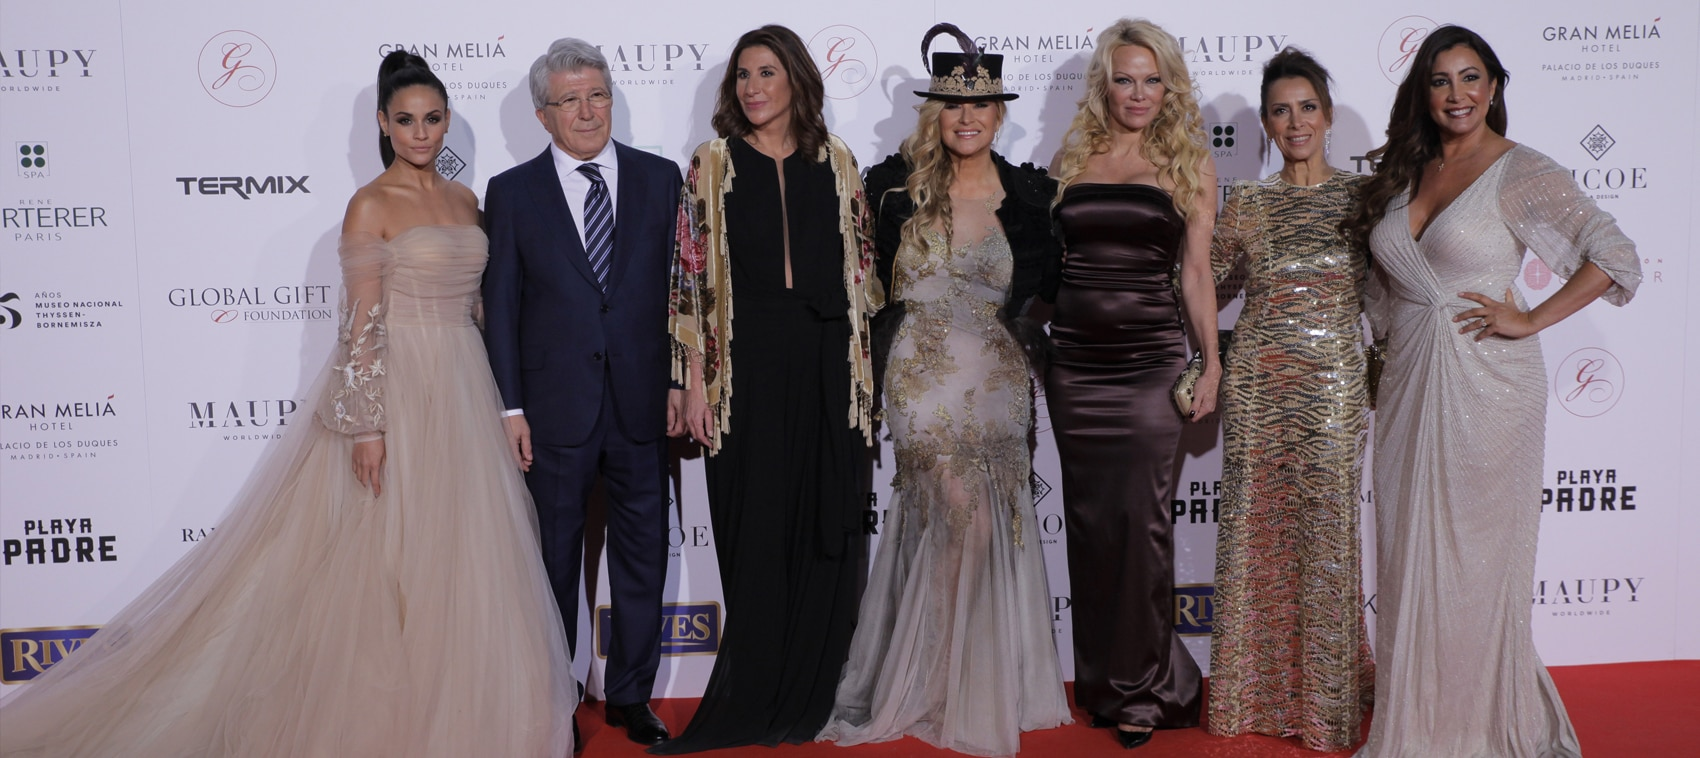 René Furterer en la alfombra roja de la III The Global Gift Gala Madrid